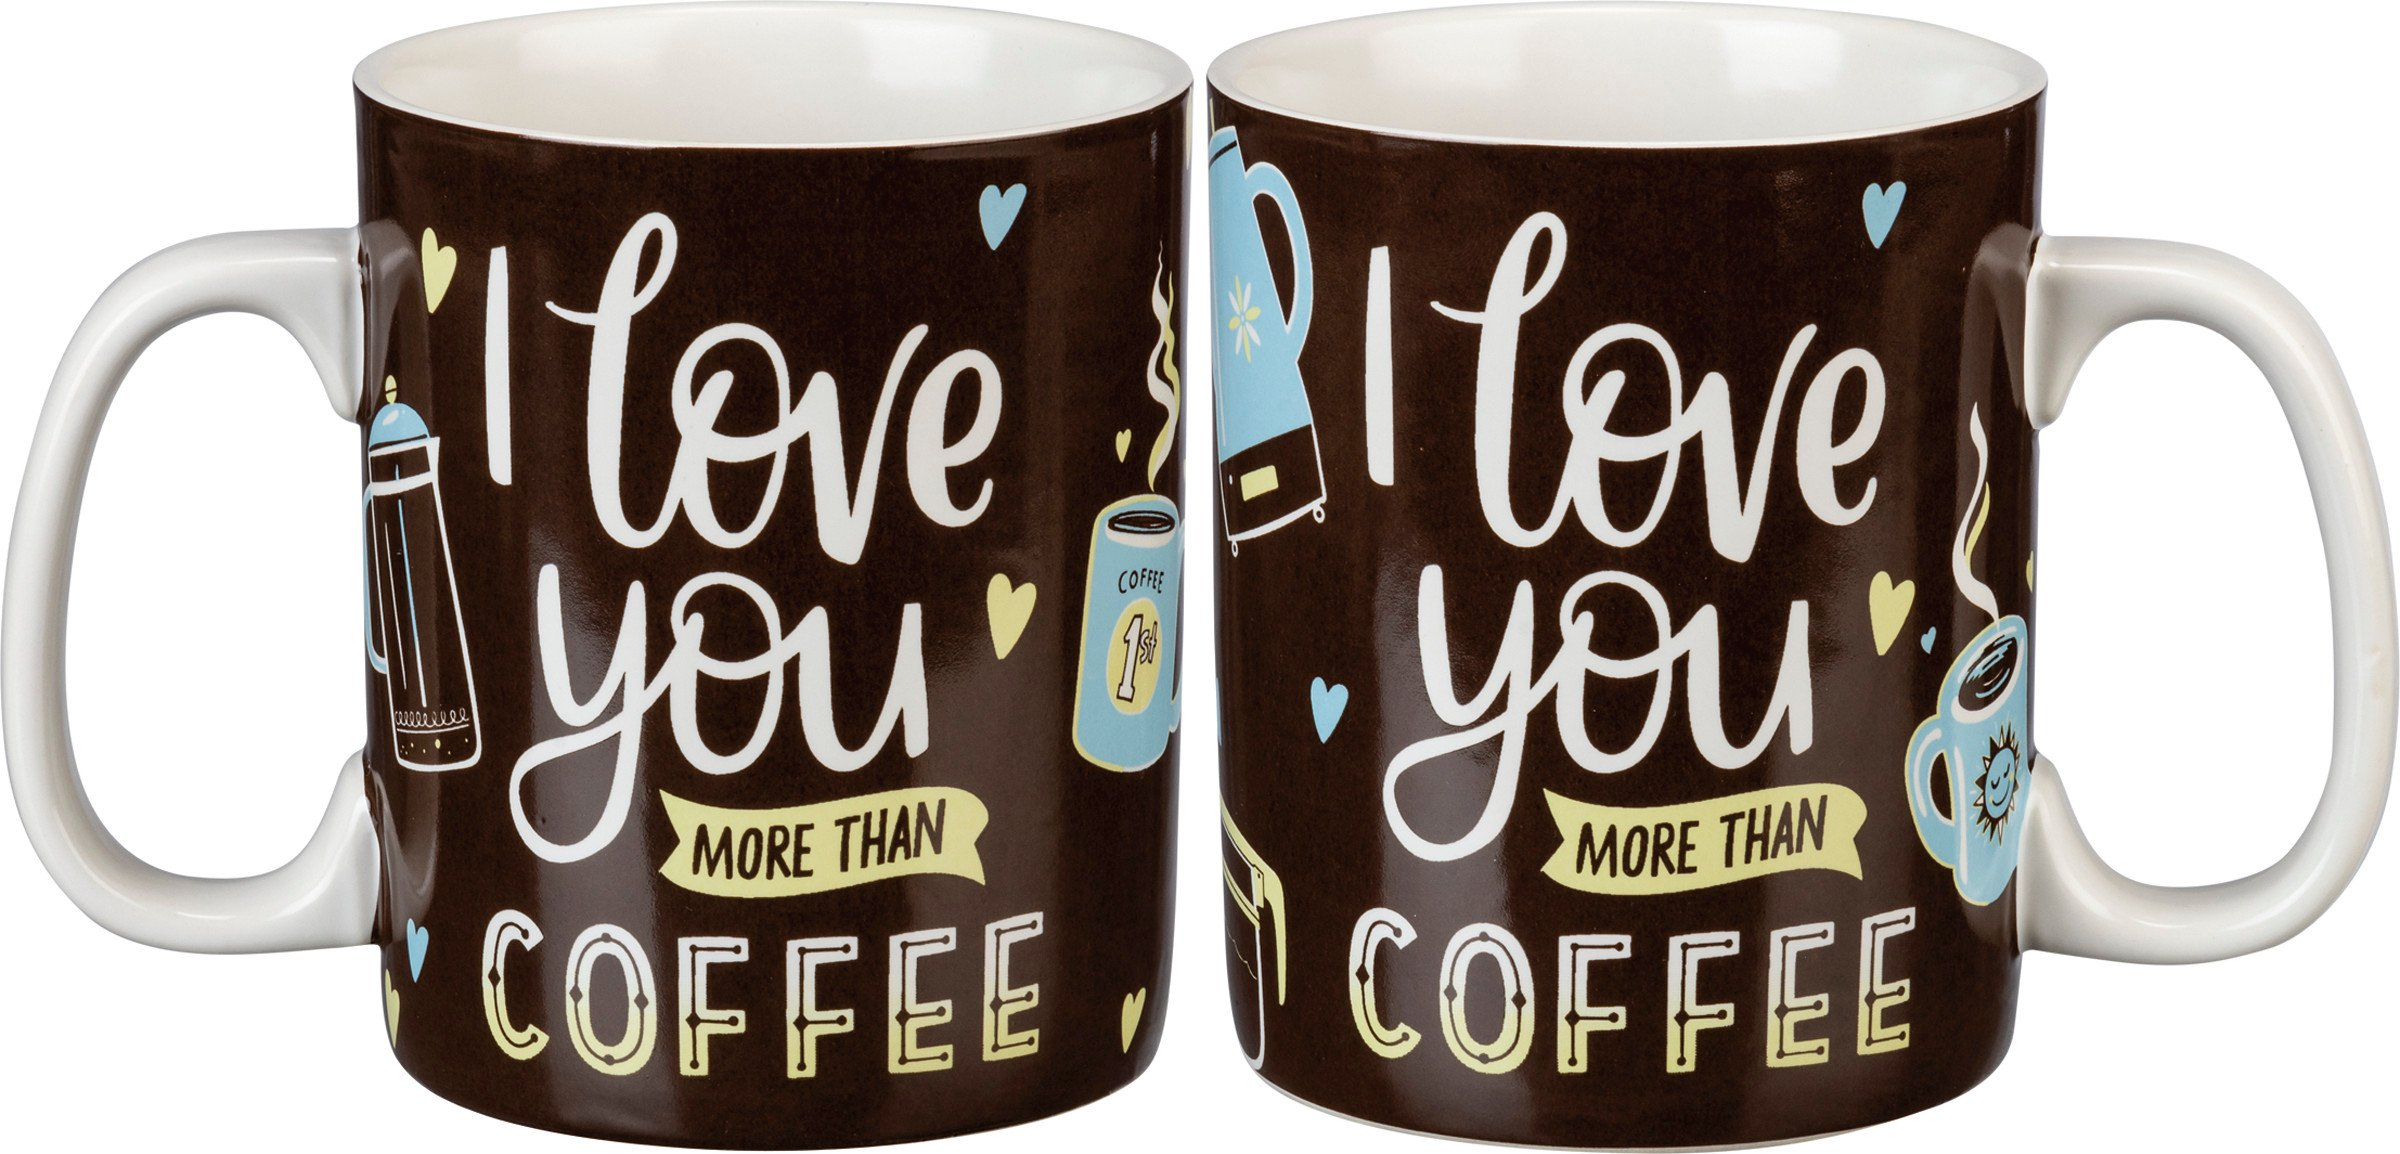 Mug I Love You More Than Coffee Lol Made You Smile Collection Primitives By Kathy